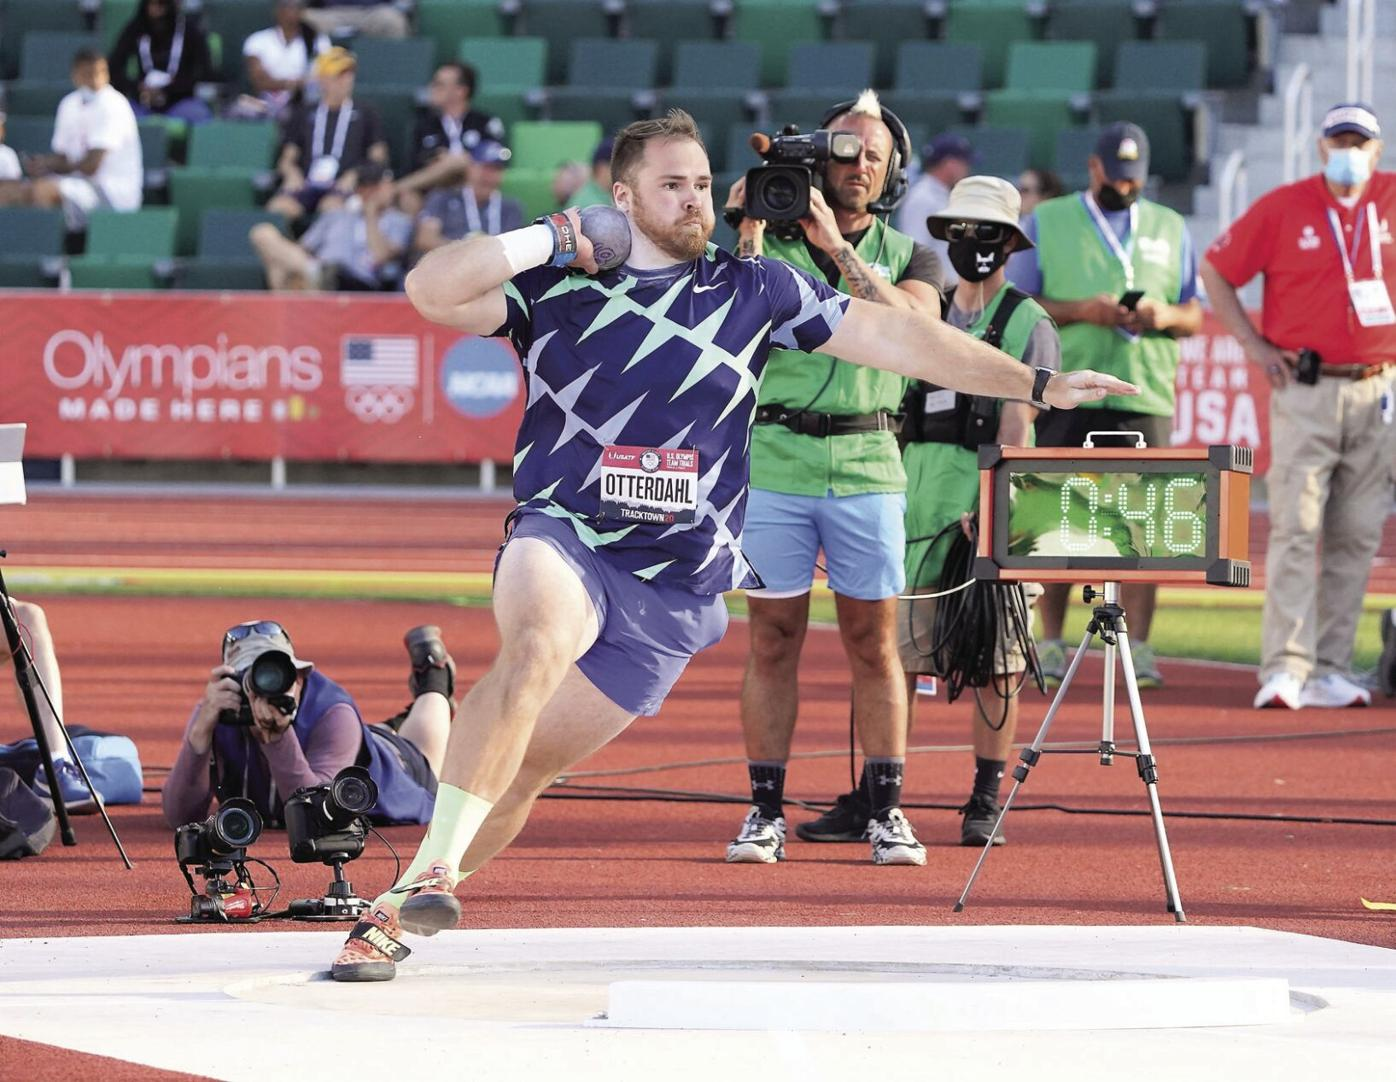 Medal on his mind: Otterdahl re-calibrates his goals